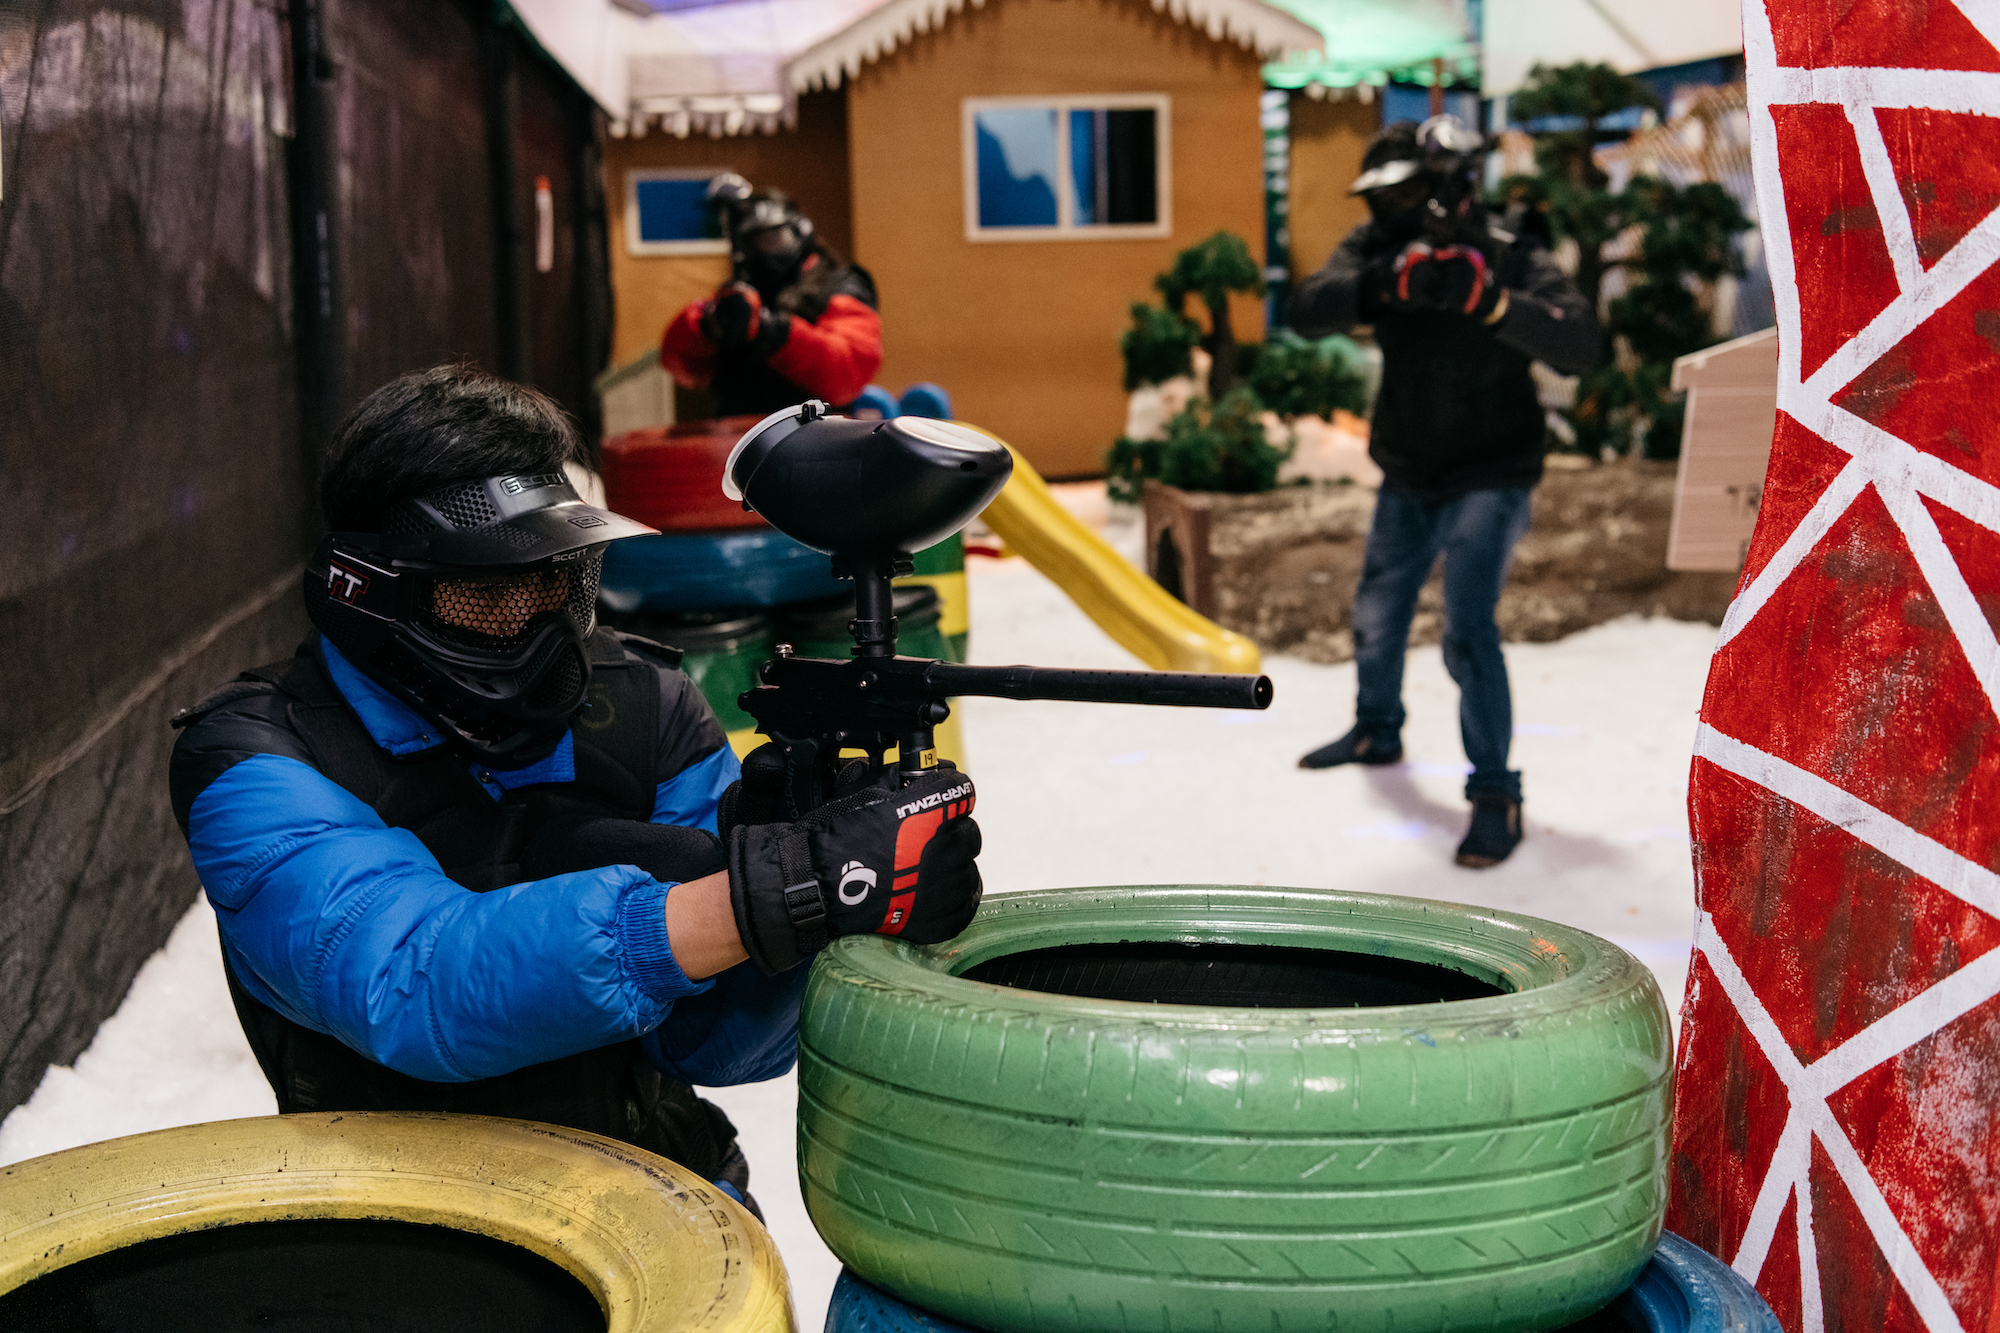 Snow City Singapore Winter Shooting Arena